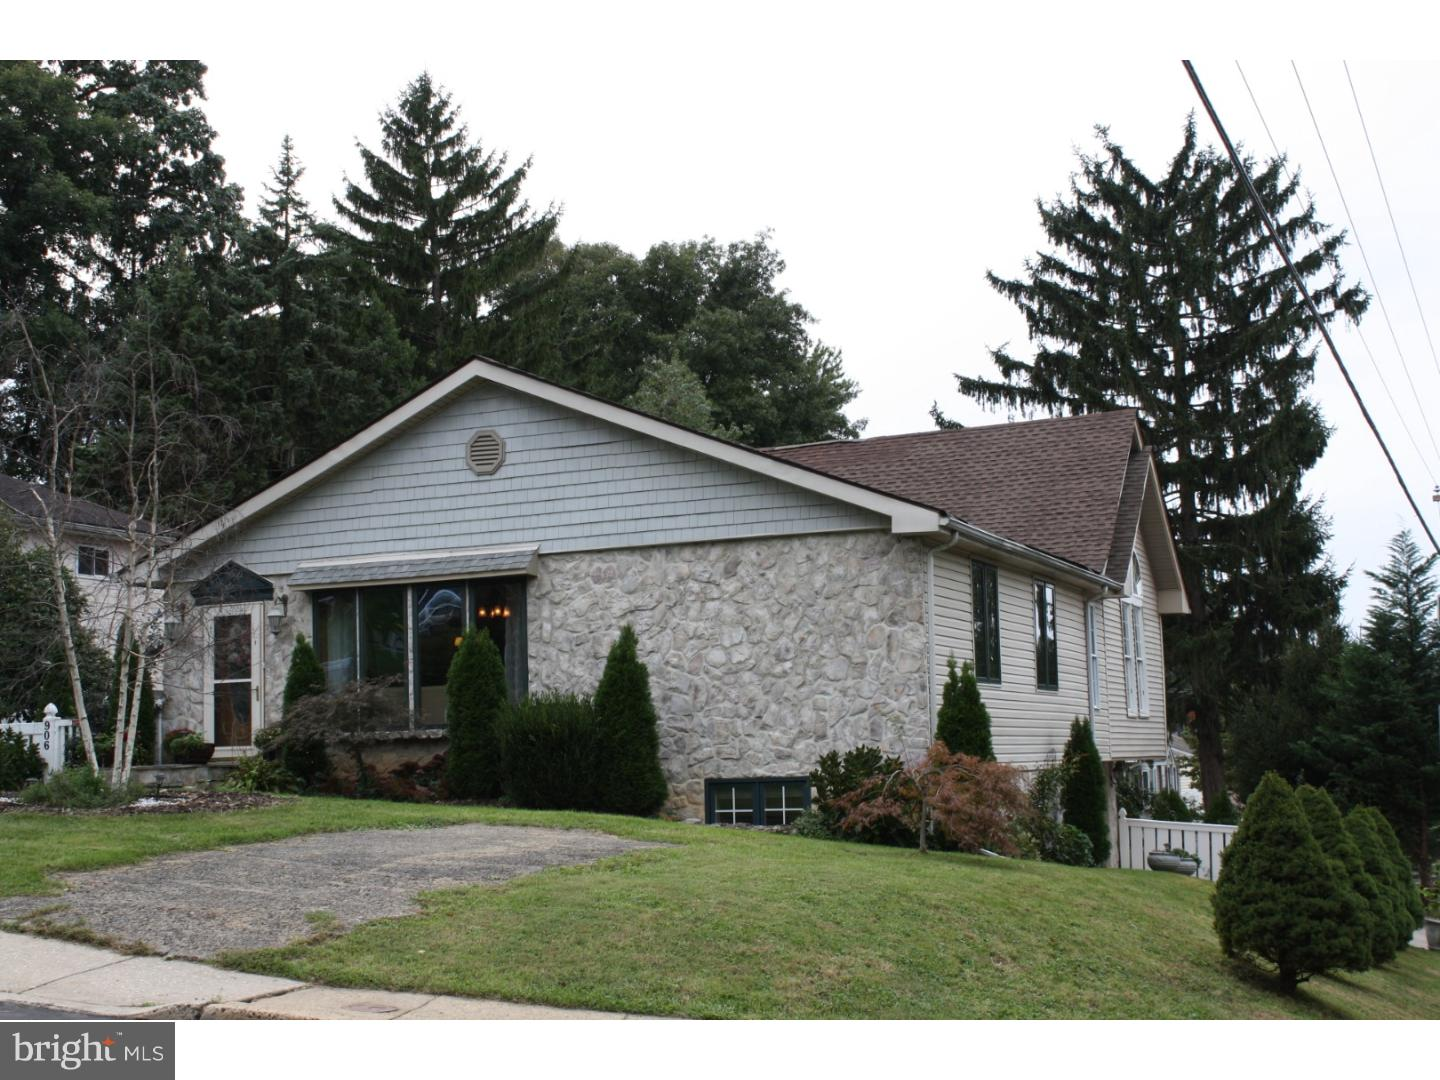 906 DIVISION AVENUE, WILLOW GROVE, PA 19090